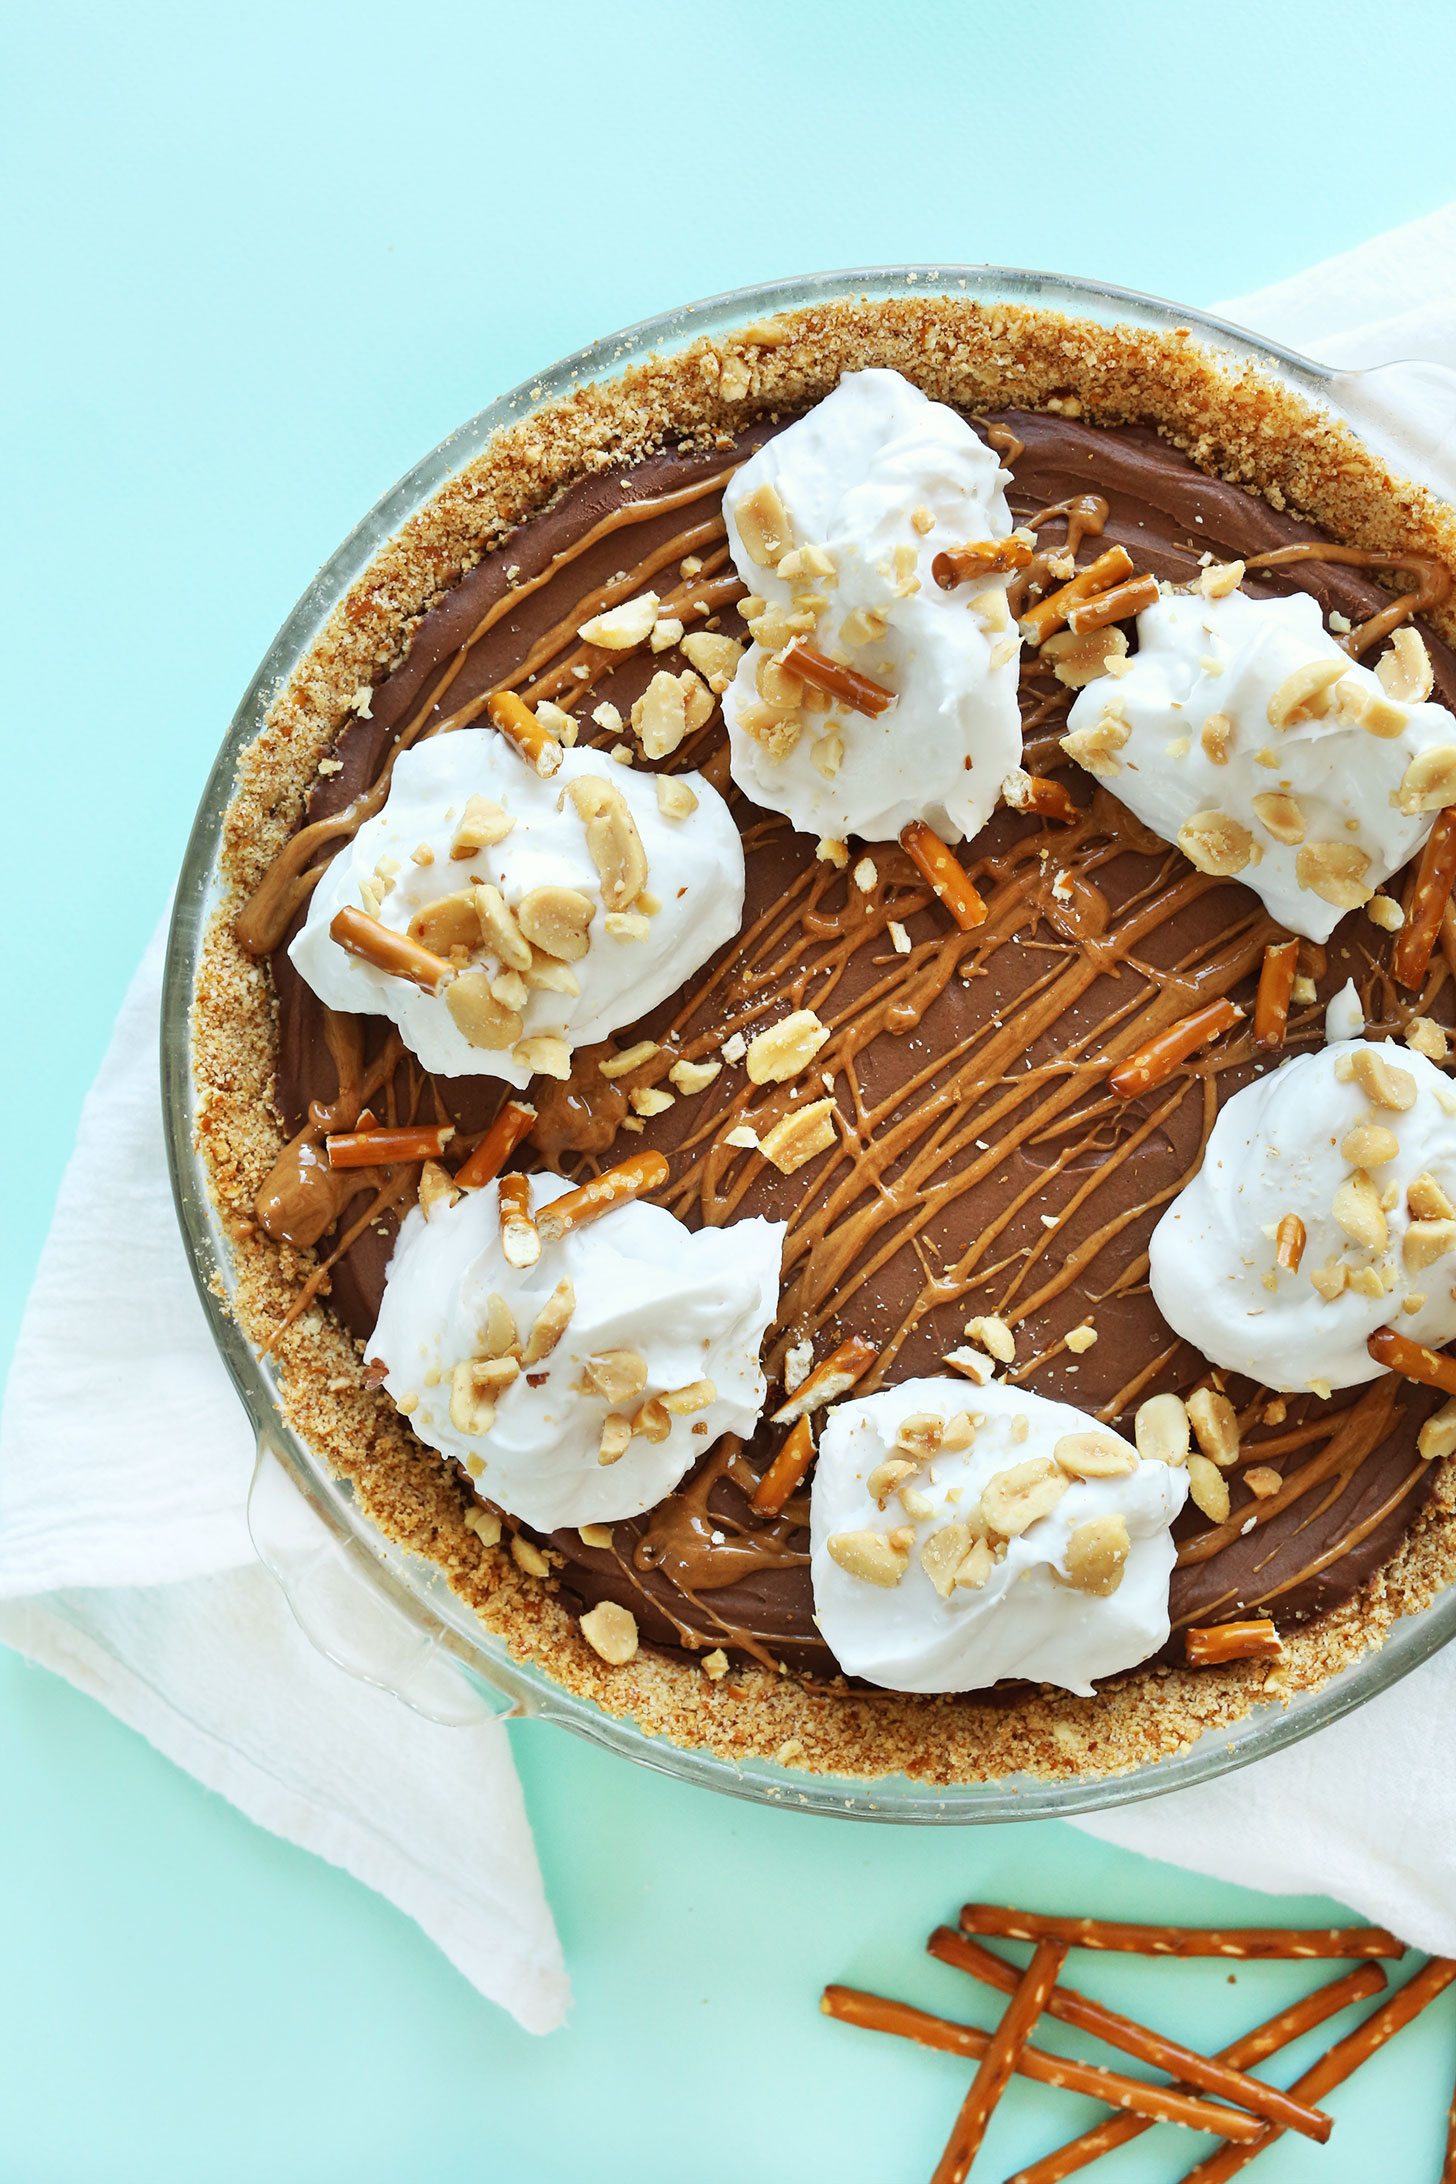 Pretzel Peanut Butter Chocolate Pie for a delicious vegan dessert recipe